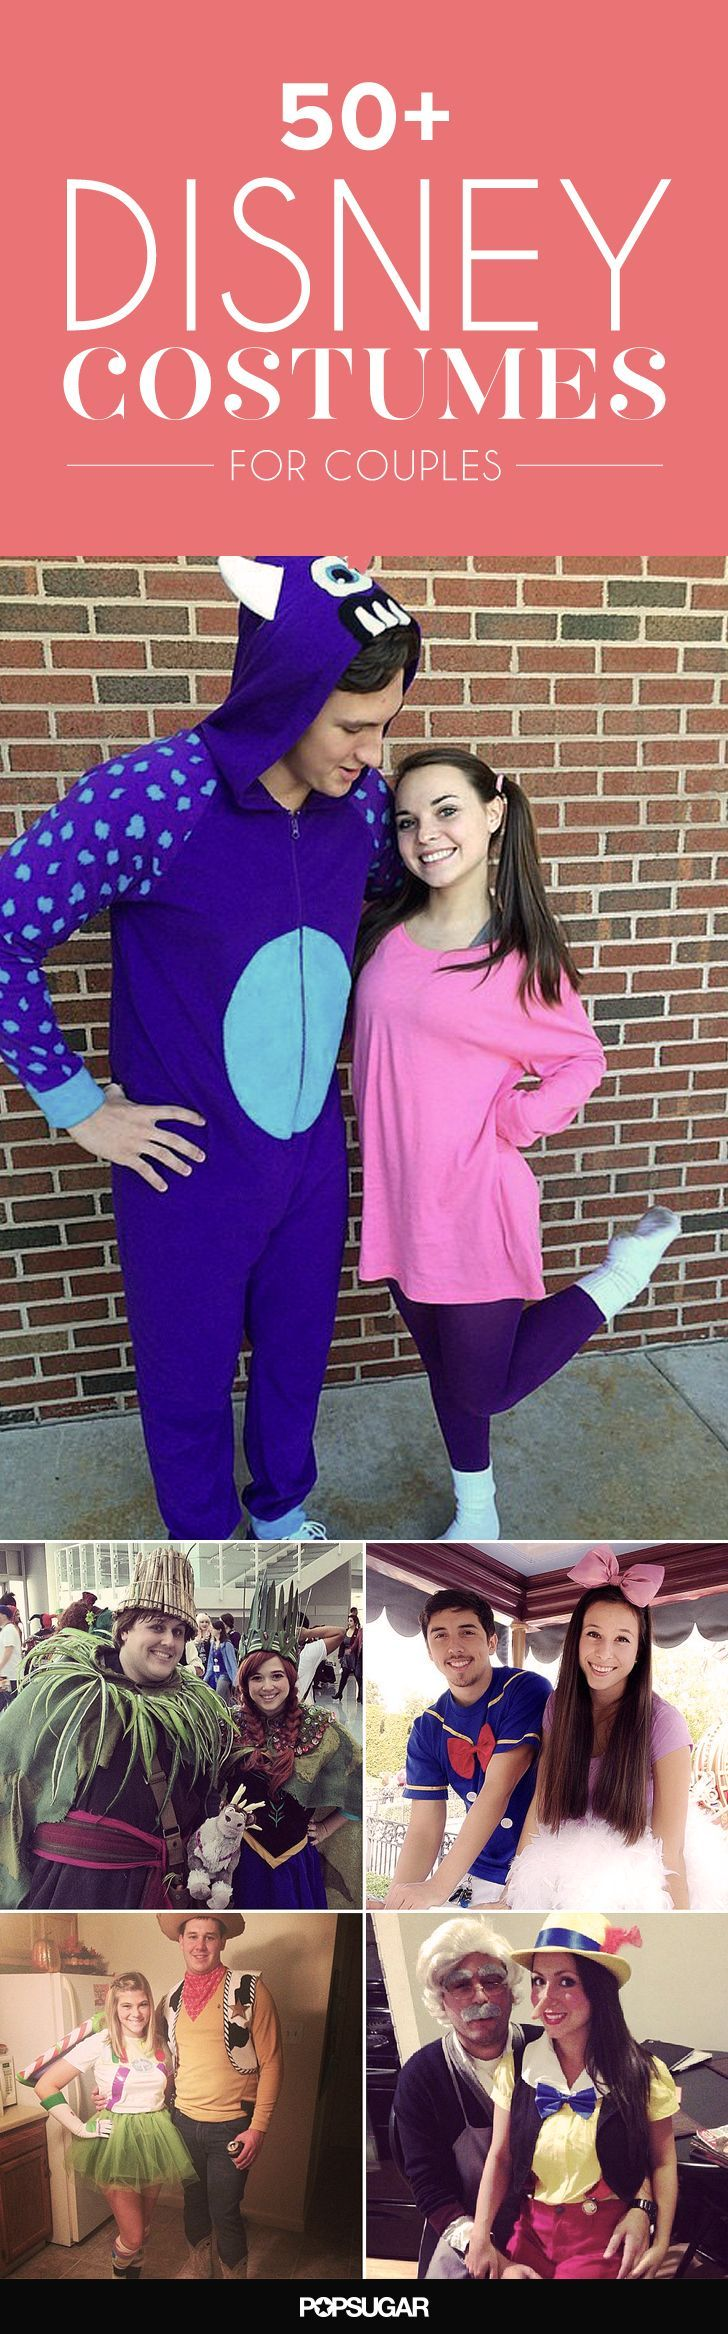 Get cute with your love with these 50 Disney inspired costume ideas!